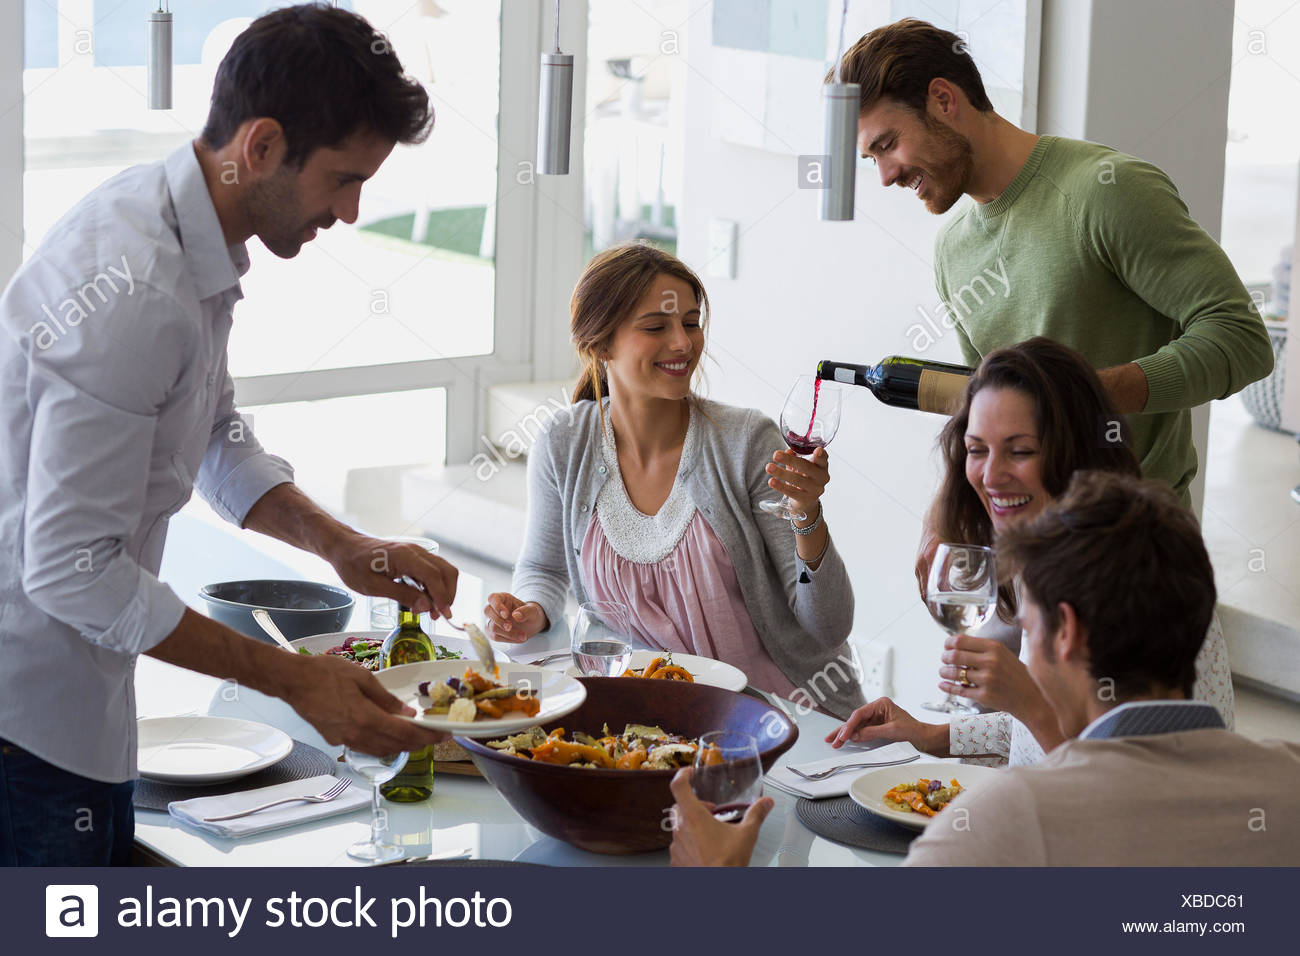 Man serving food to his friends at dining table - Stock Image